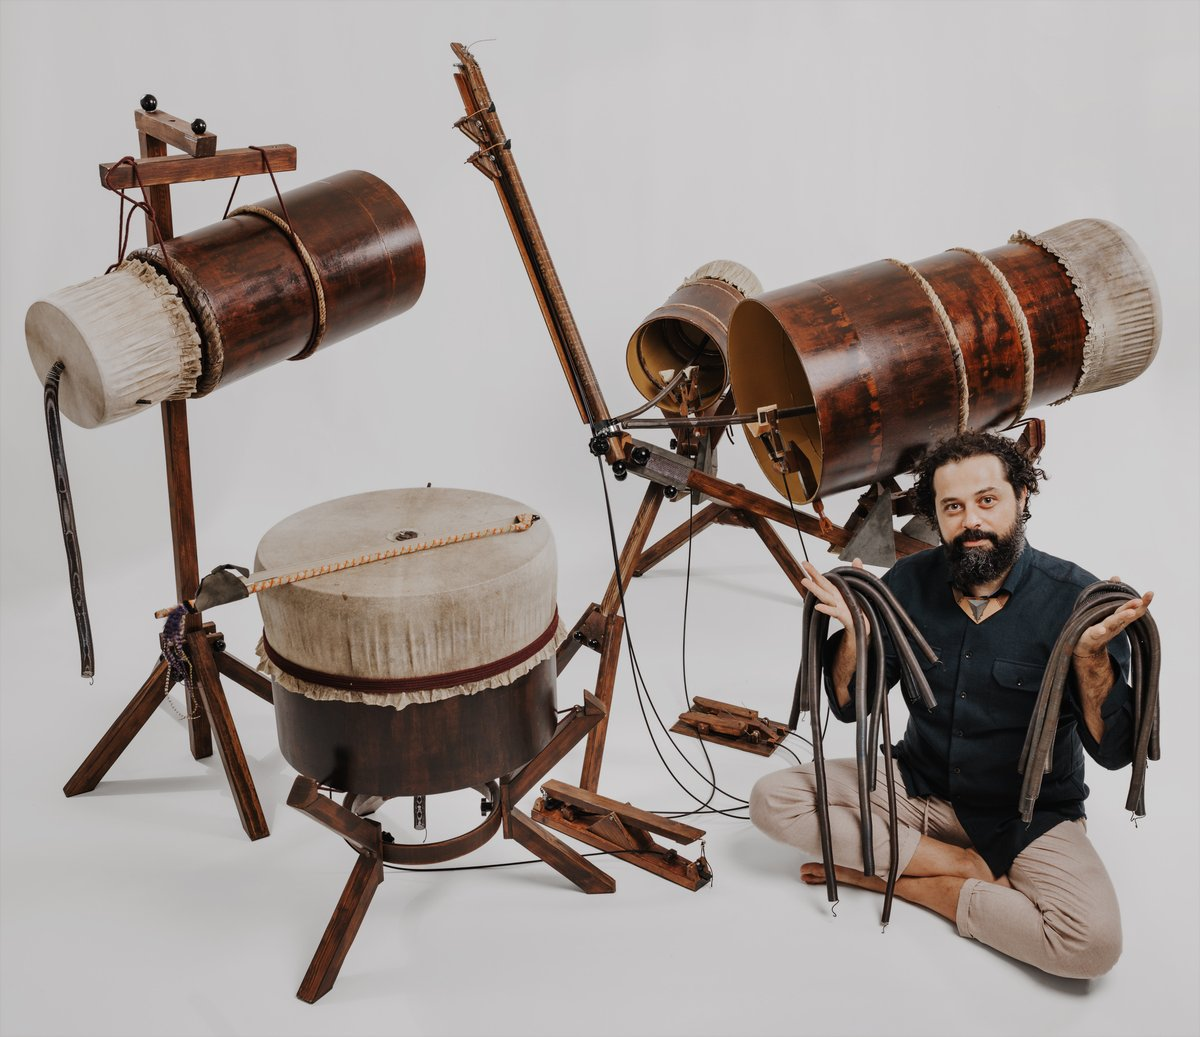 Intruder features a unique instrument, the Yaybahar. Created by Turkish musician Gorkem Sen, his Yaybahar is the only one in the world and it's my honour to have its incredible sounds, and Gorkem's incredible playing, on the album.